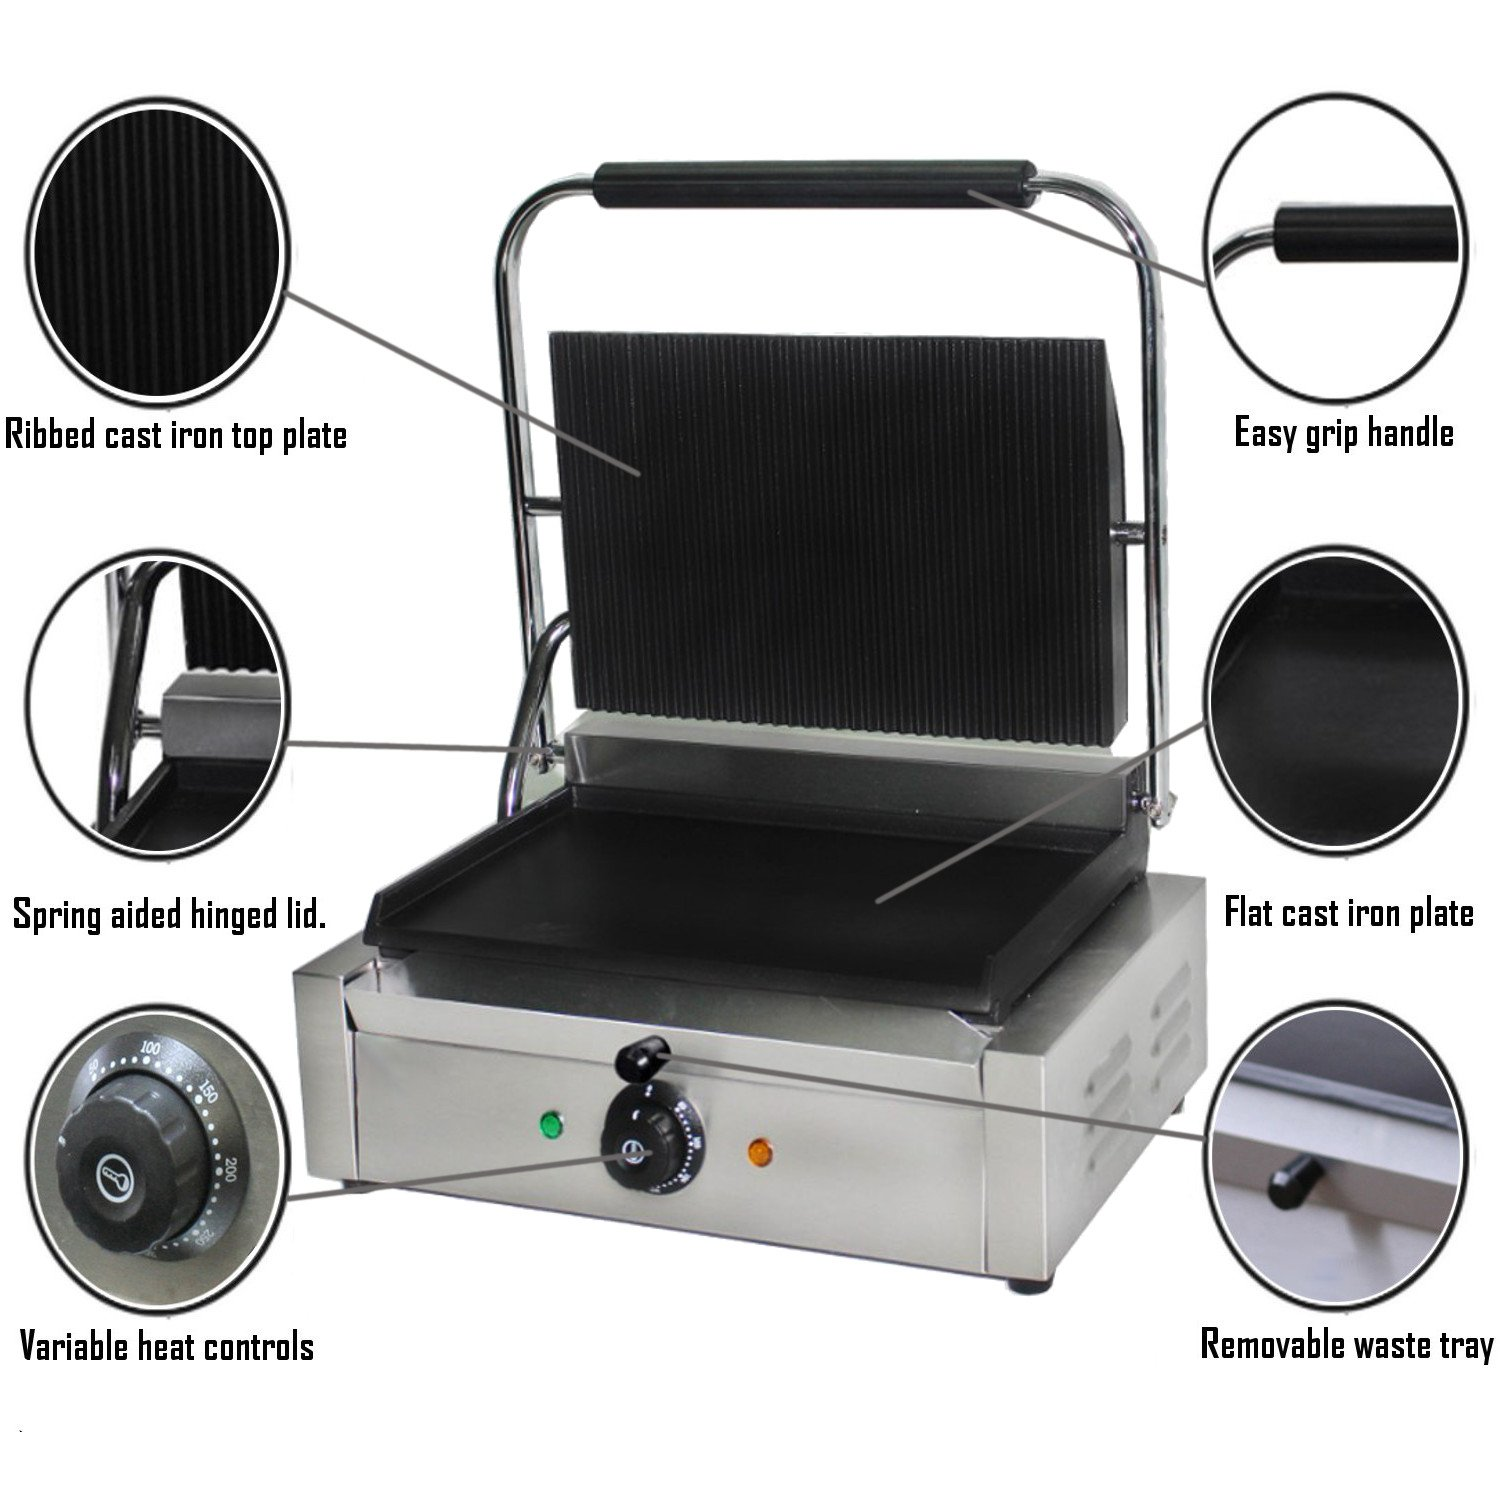 Contact Grill Sausages Power 2.2Kw Heavy Duty Top Ribbed And Flat Bottom Heating Plate. Electric Hotplate Burgers Toasties Chef-Hub Commercial Use Large Panini Grill Press Machine Sandwich Press